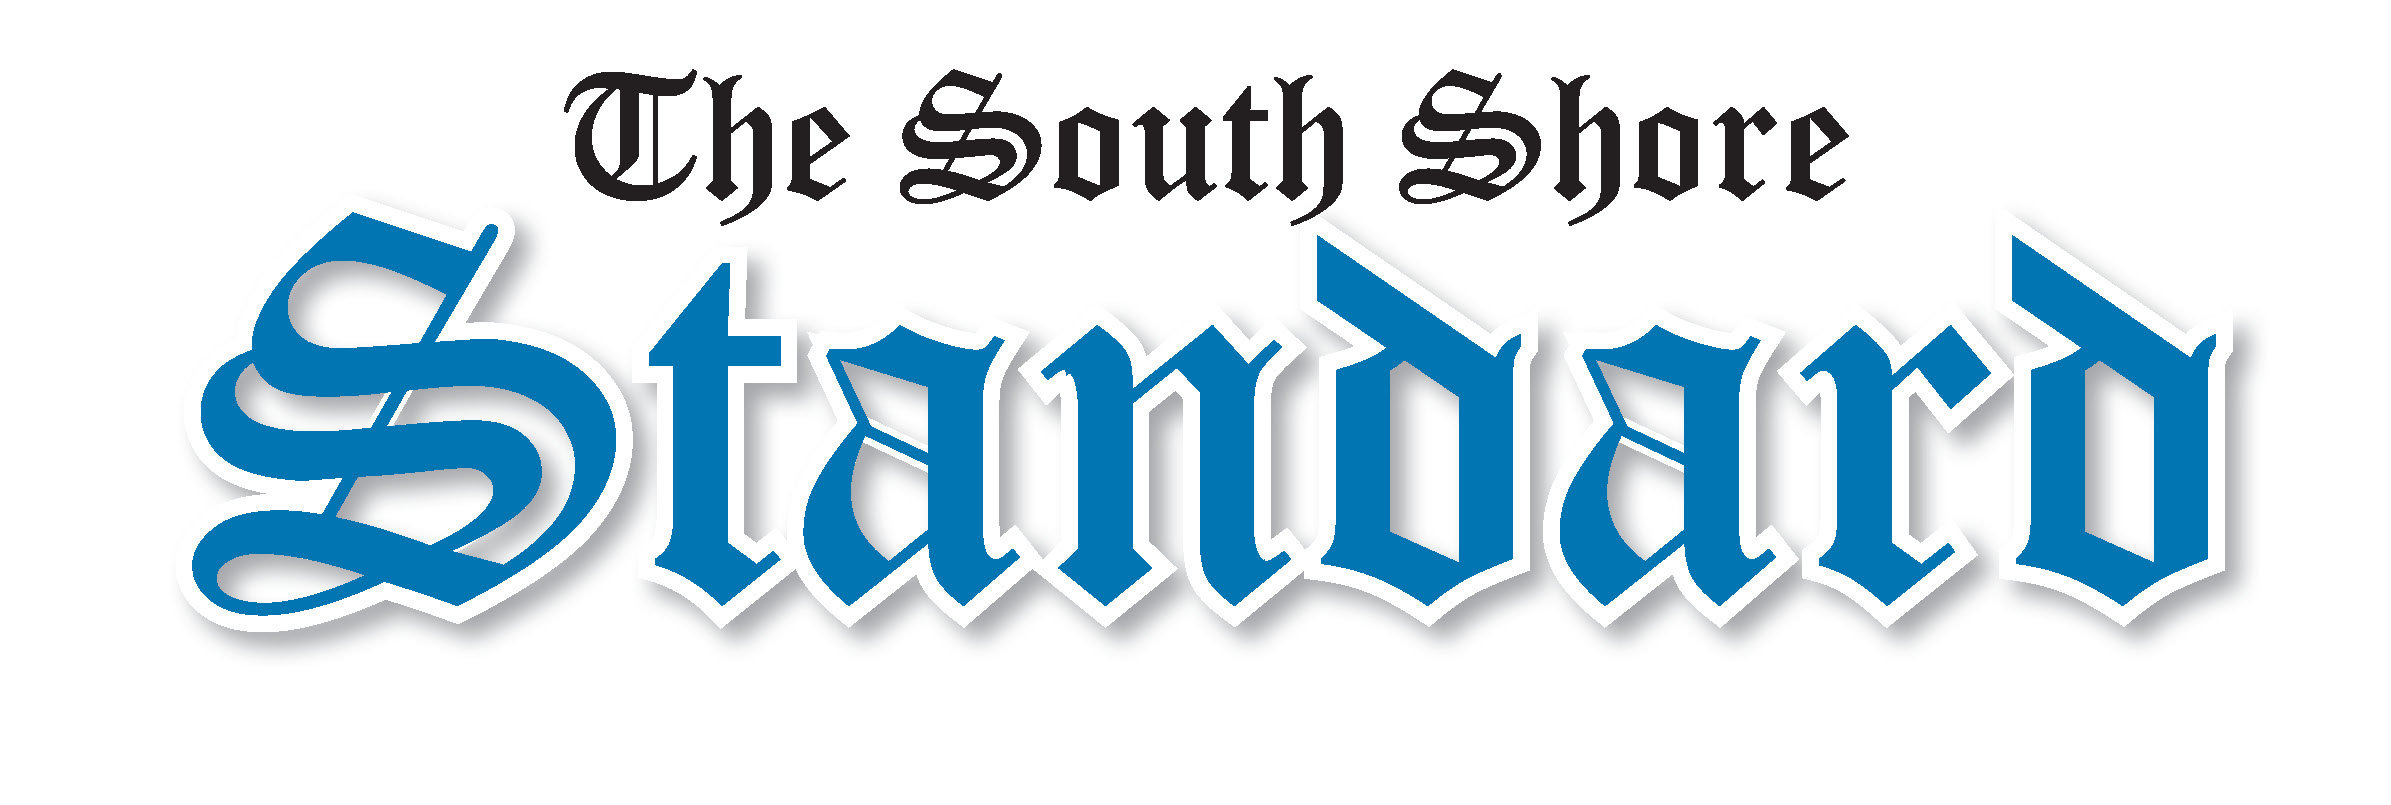 The South Shore Standard